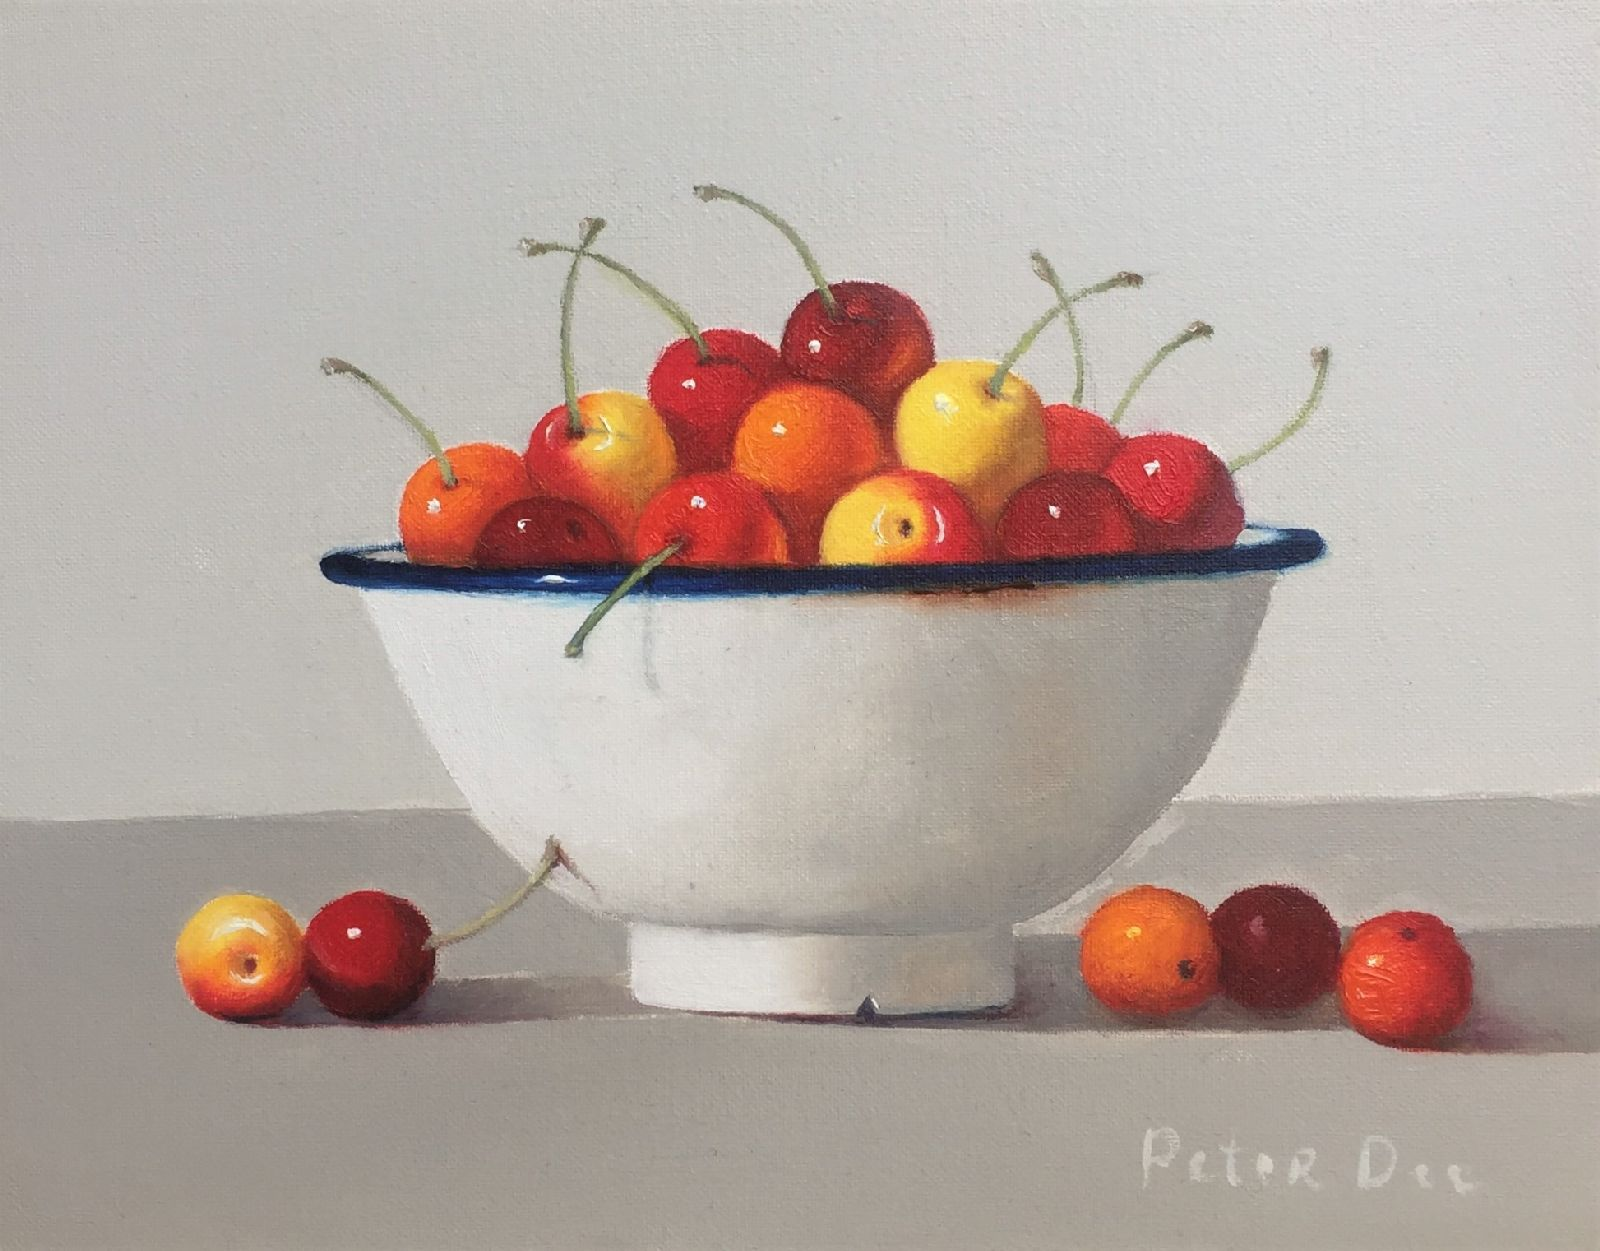 Bowl Cherries Still Life by Peter Dee